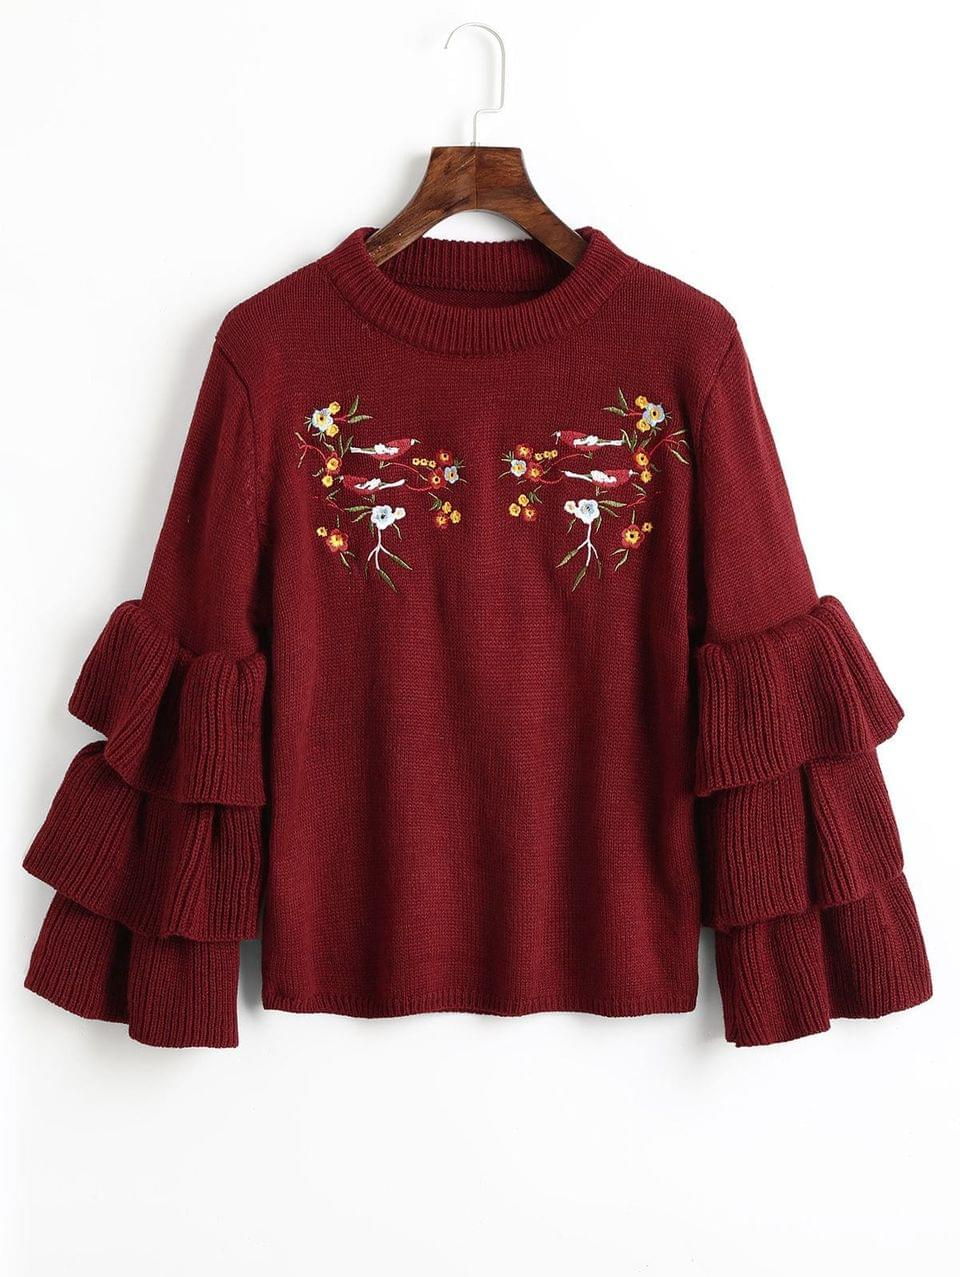 Women's Layered Sleeve Floral Embroidered Sweater - Wine Red